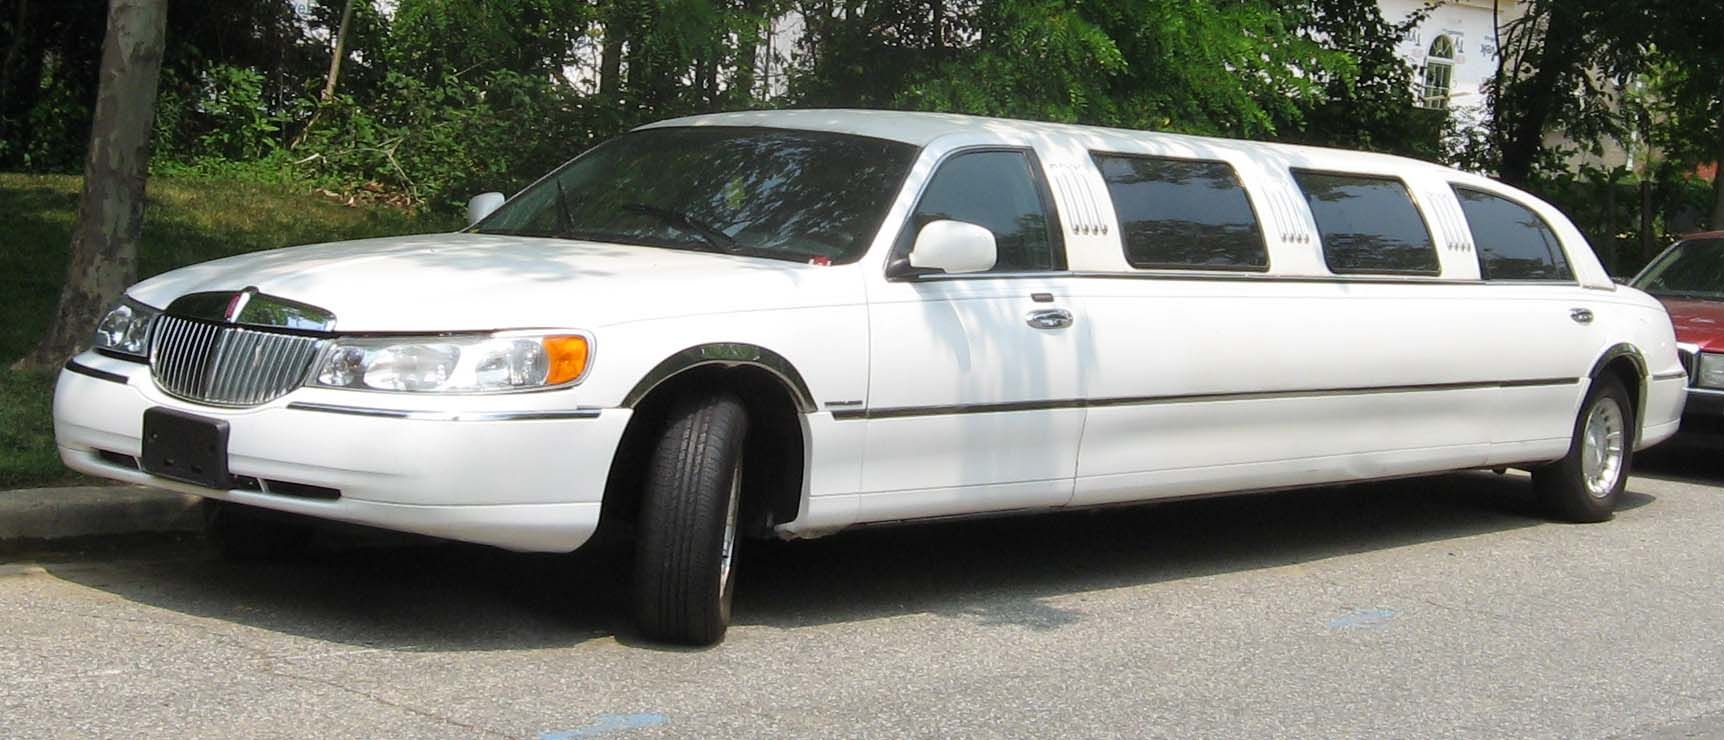 Lincoln Town Car Limo How About This Limo Like It See A Lot More